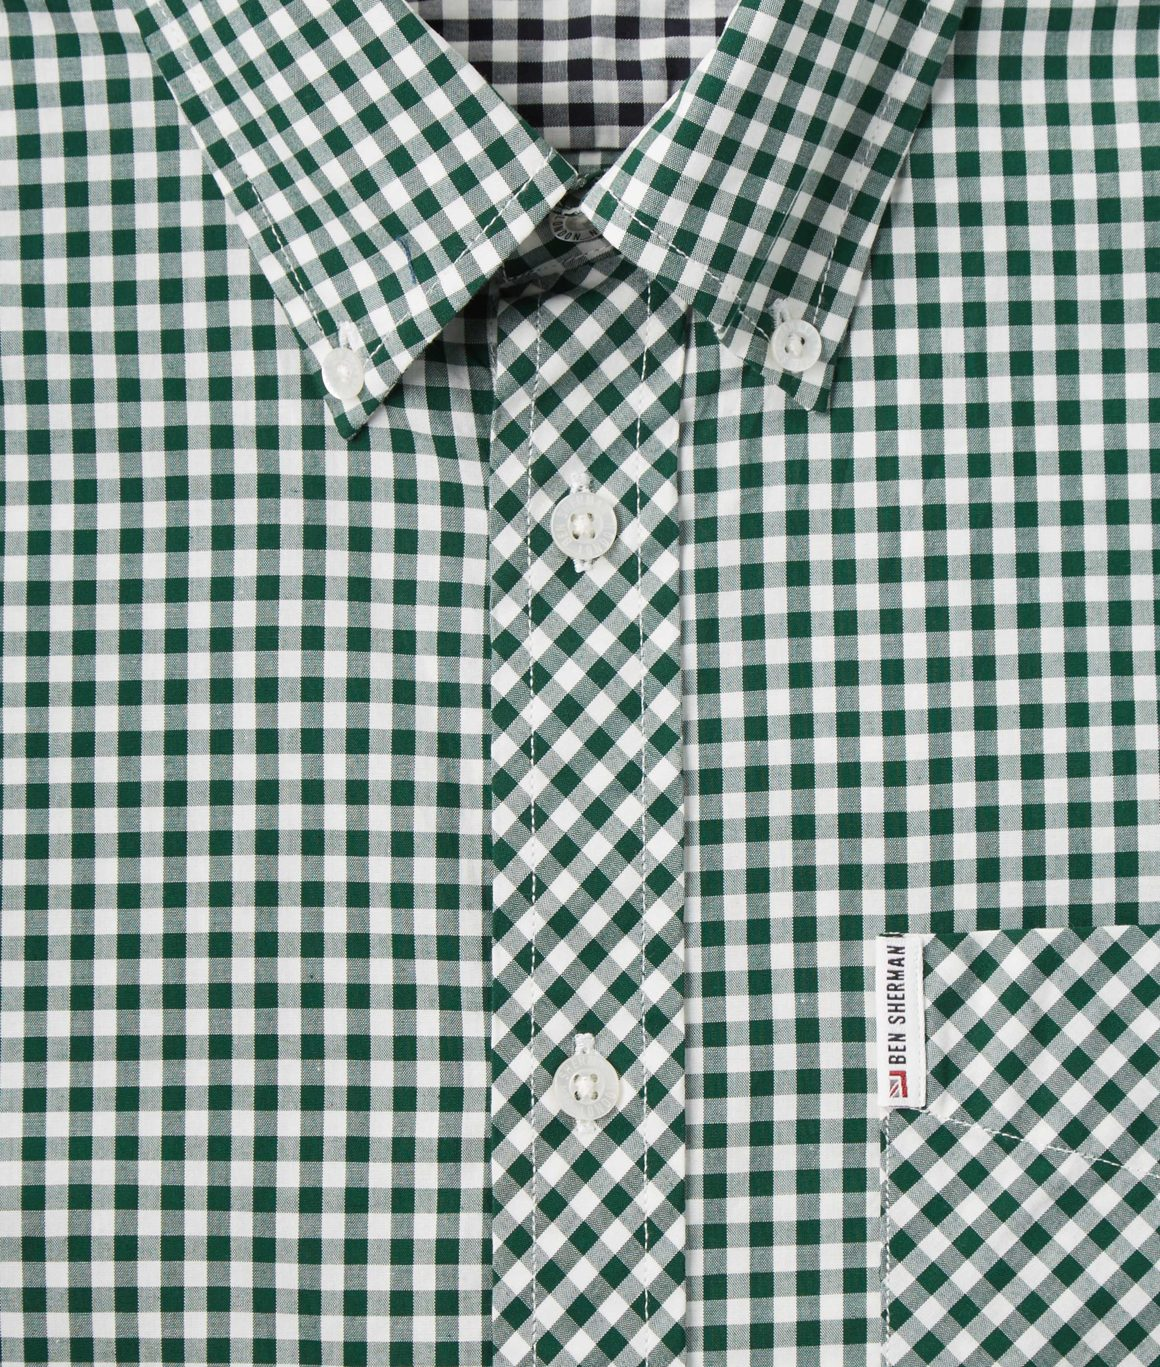 Ben Sherman, CLASSIC GINGHAM MOD FIT LS SHIRT, Forest Night, Number 2